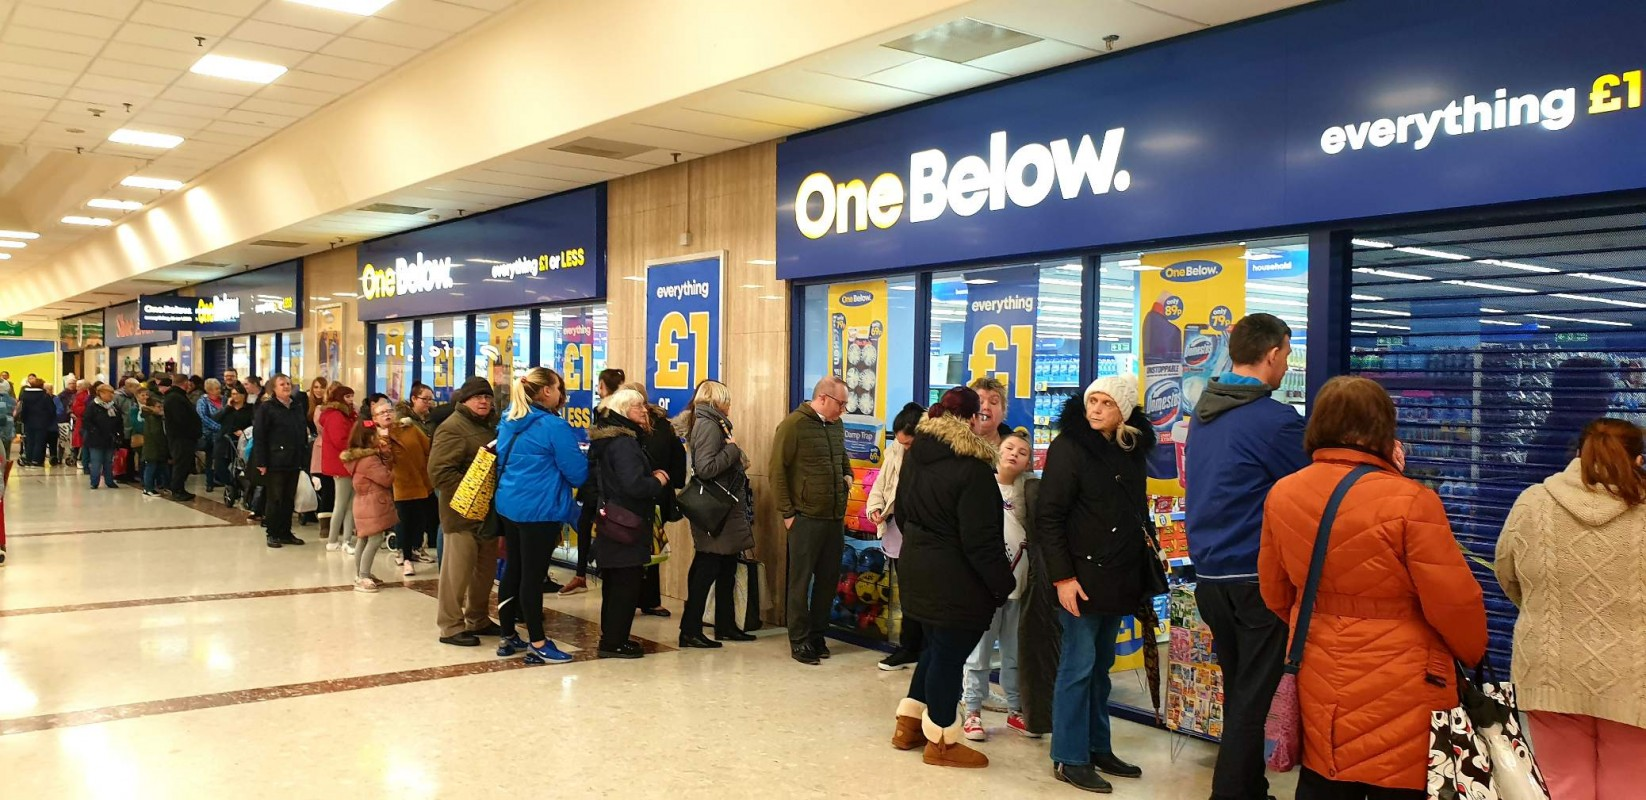 New Image for SHOPPERS QUEUE AS NEW DISCOUNT RETAILER ONE BELOW OPENS AT THE HARDSHAW CENTRE